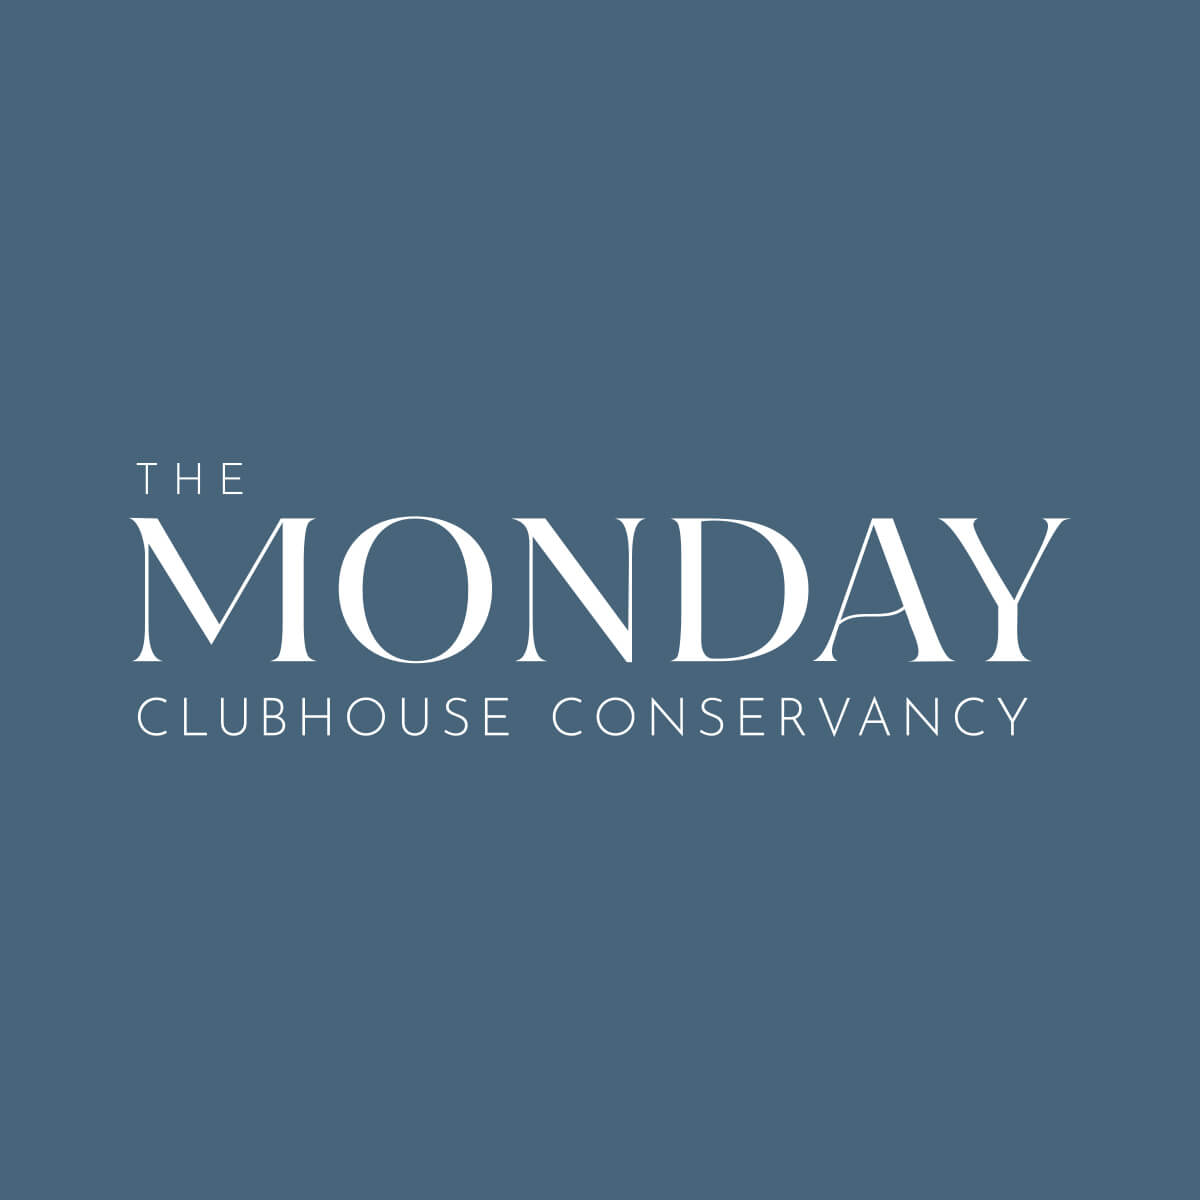 The Monday Clubhouse Conservancy logo on a blue background